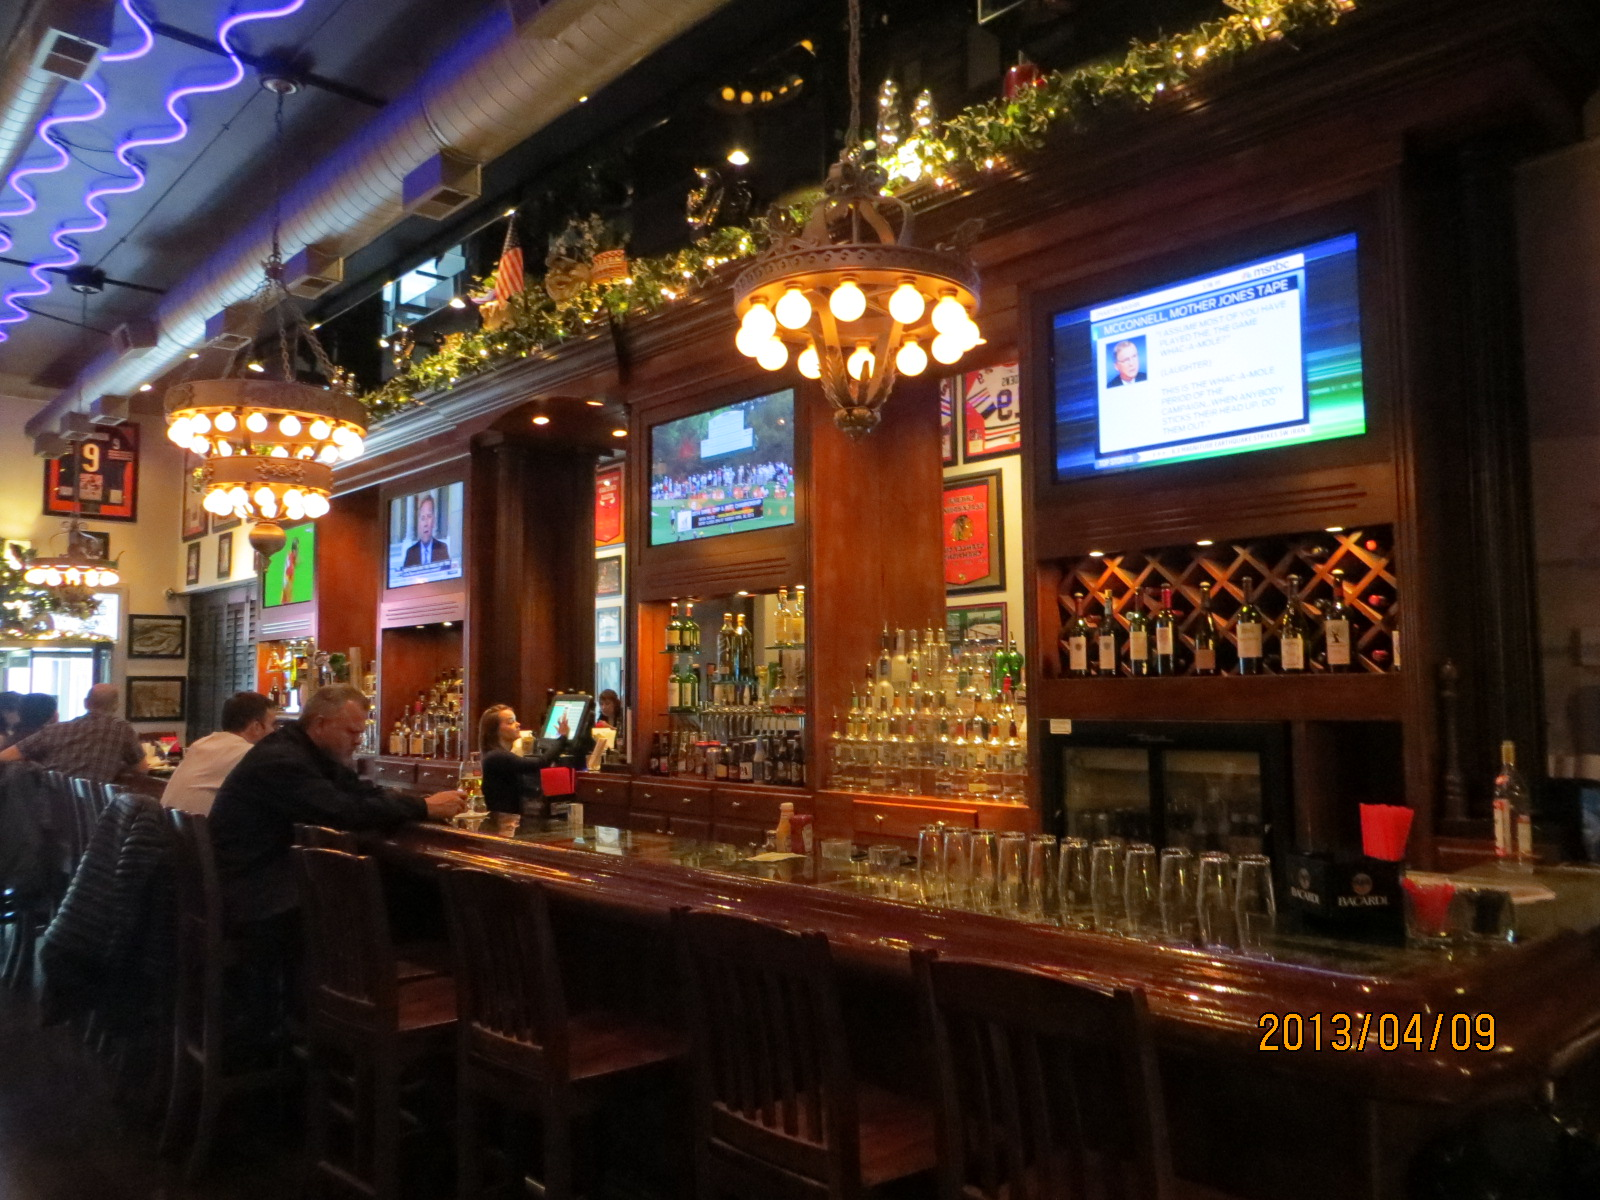 Jeeps Pubs Taverns and Bars: Rudy's Bar and Grille (Chicago)